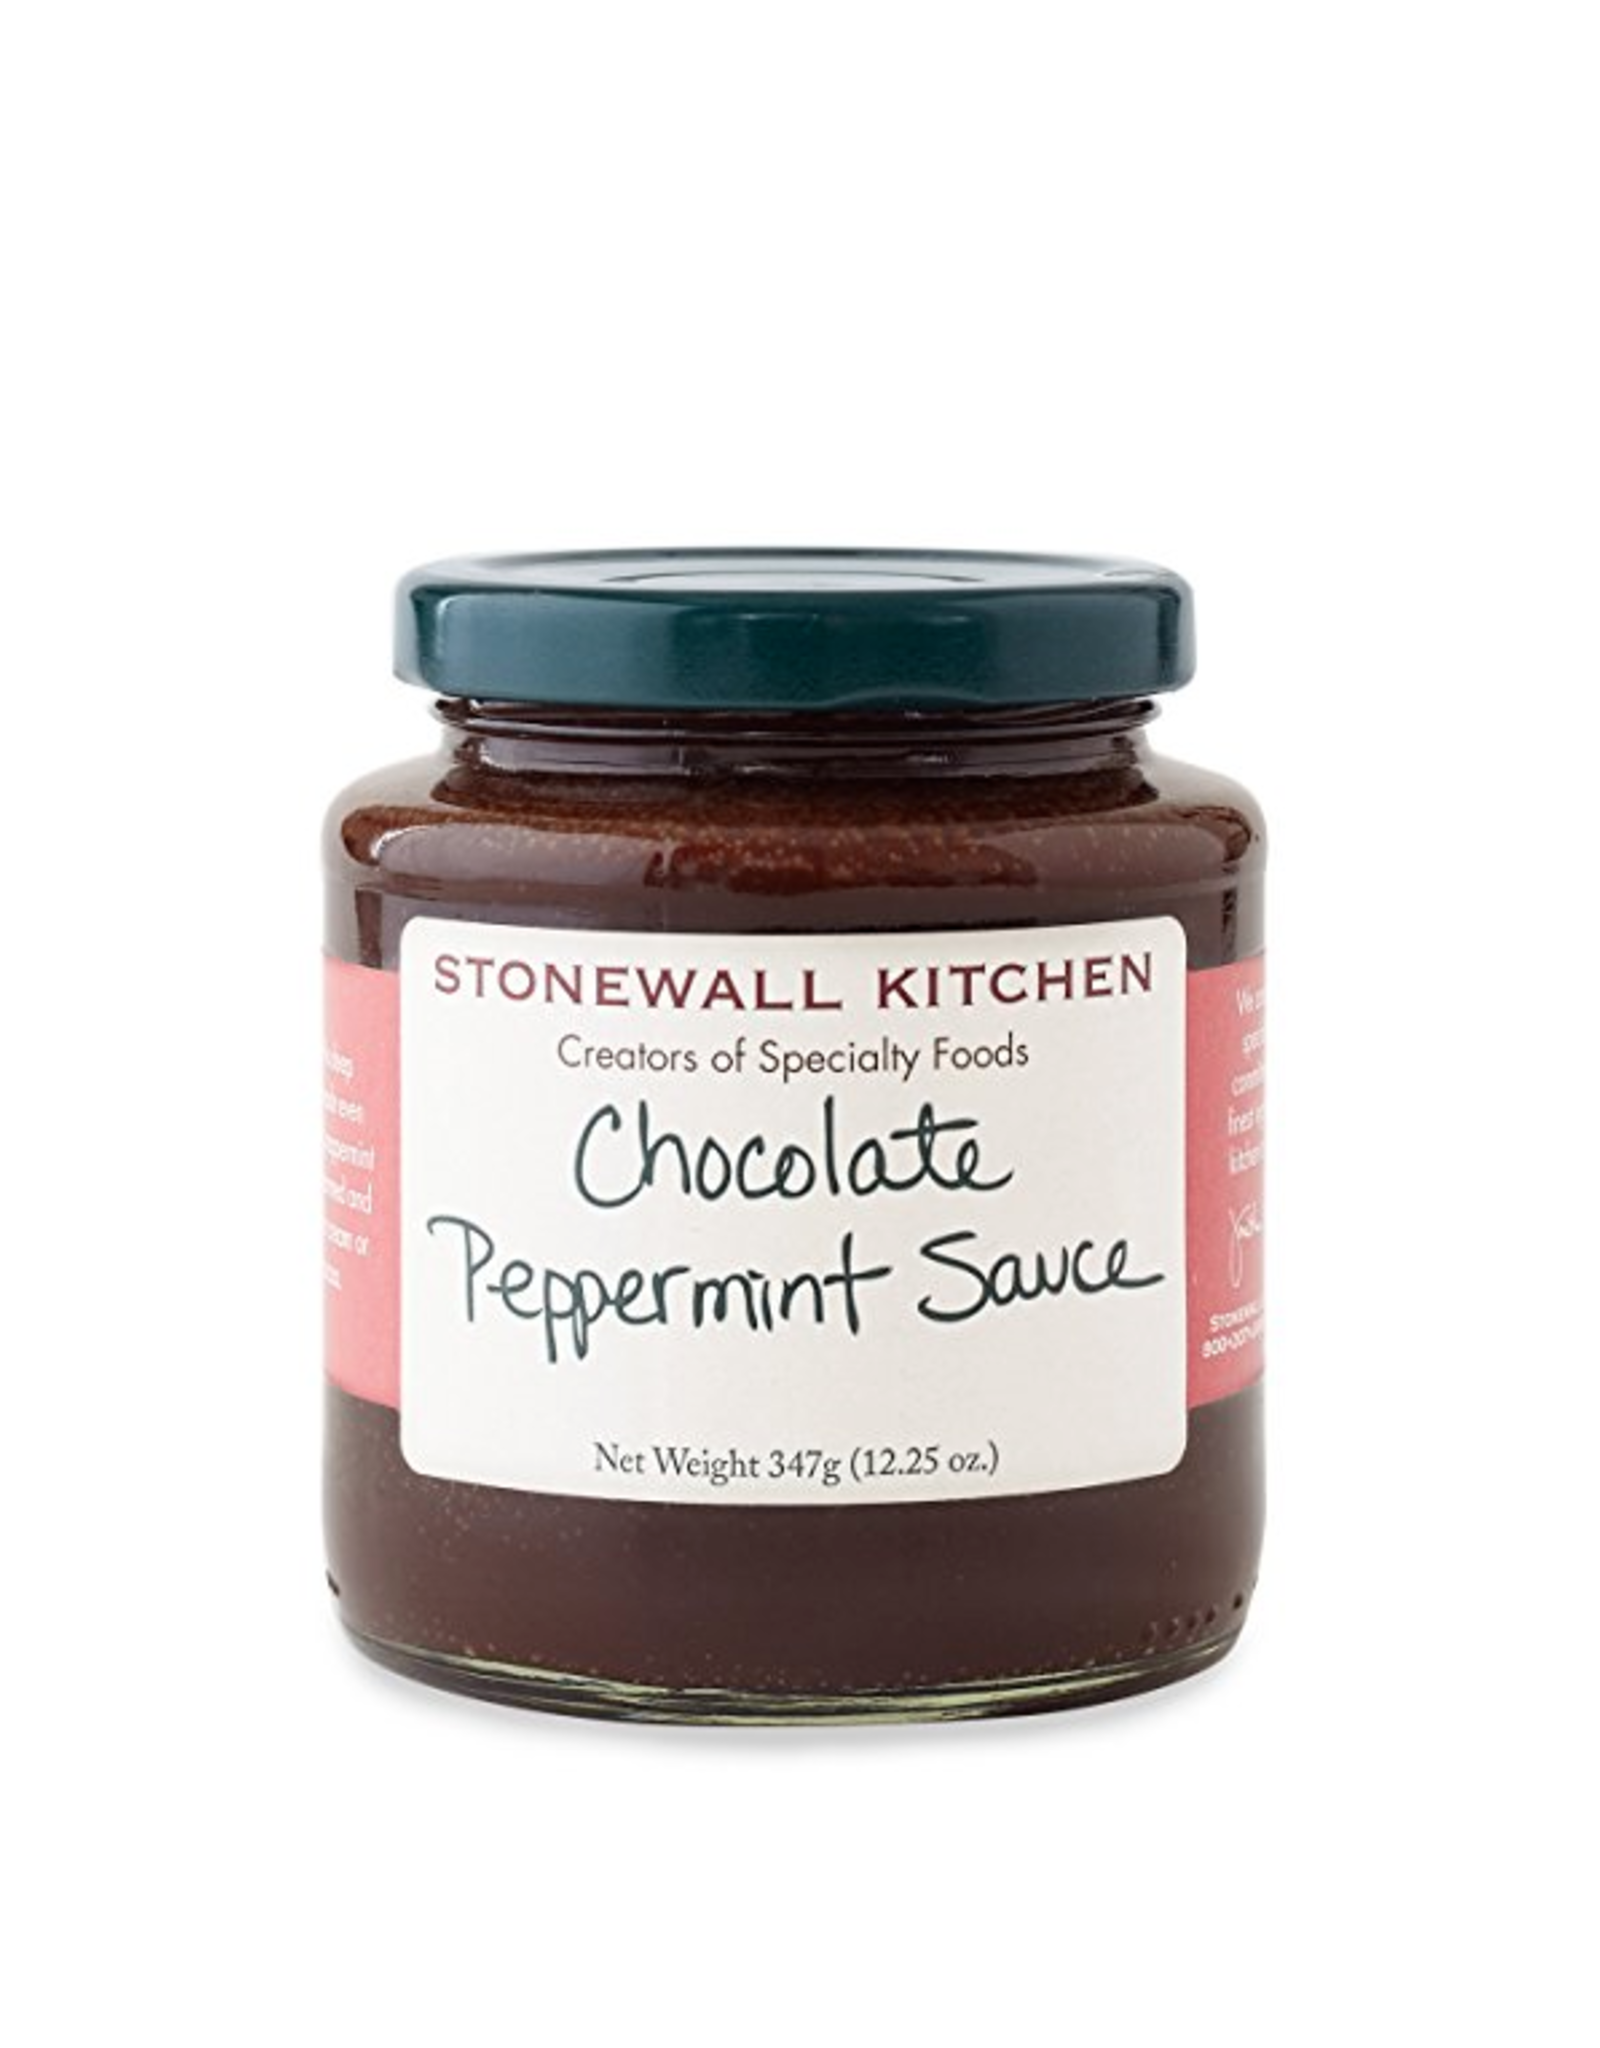 Stonewall Kitchen Holiday Chocolate Peppermint Sauce